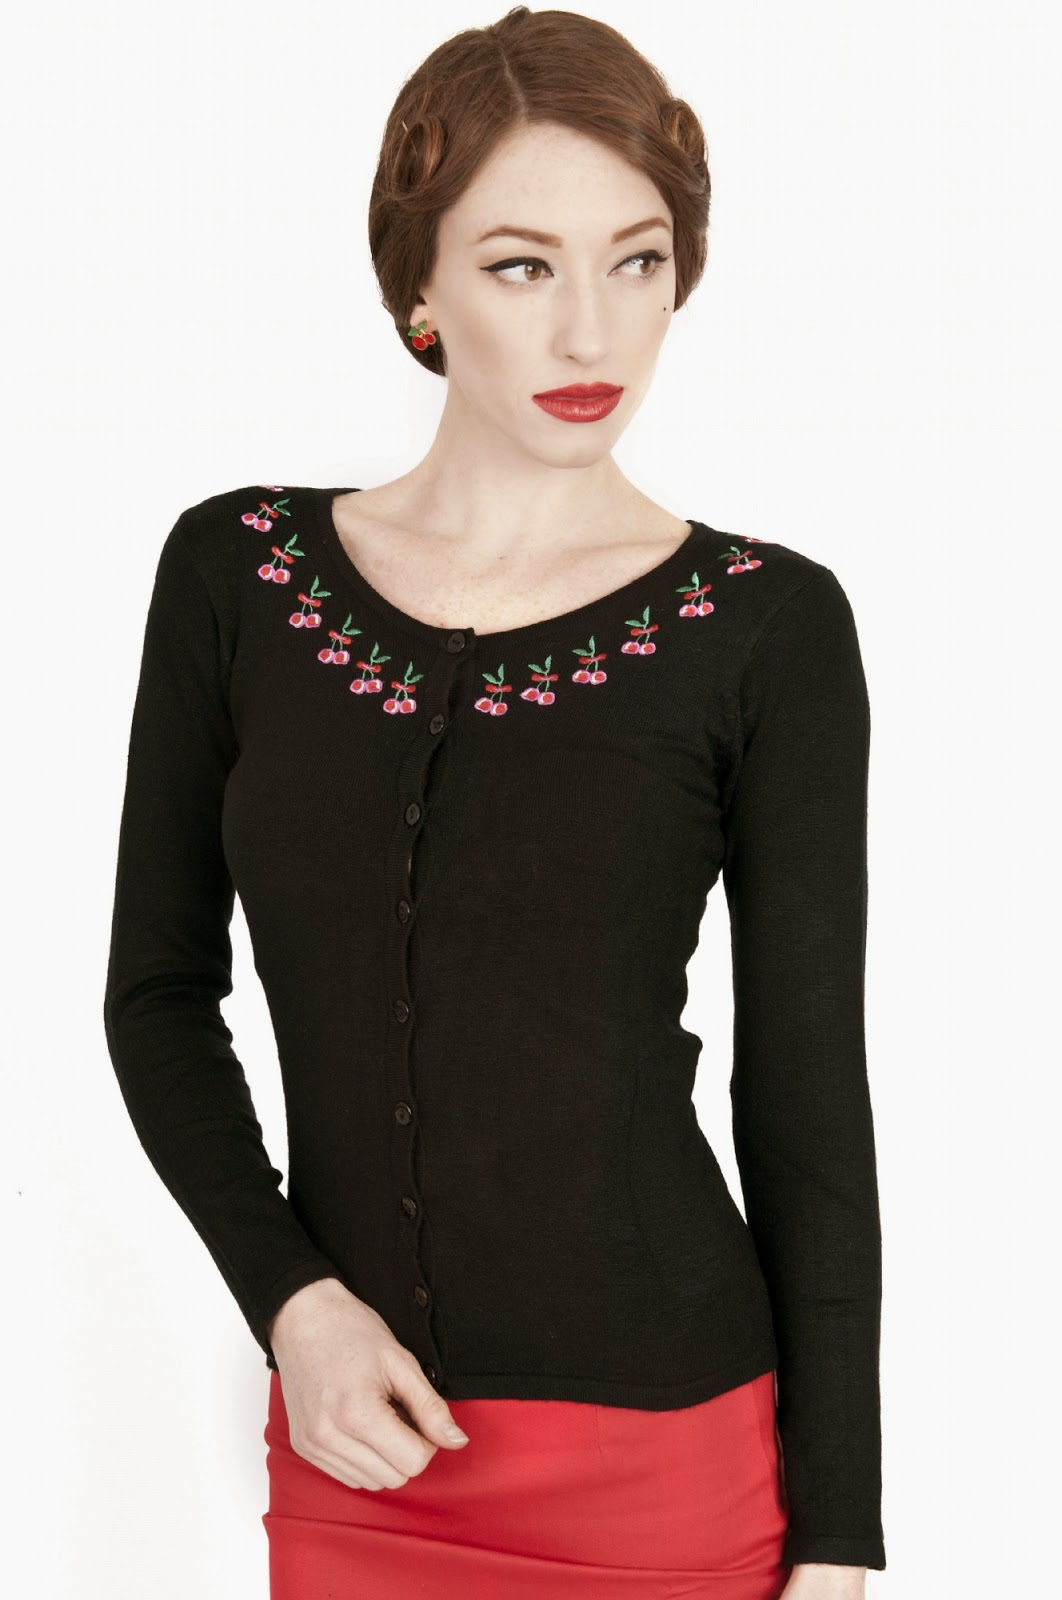 Black fitted cardigan with tiny cherries, perfect with skirts